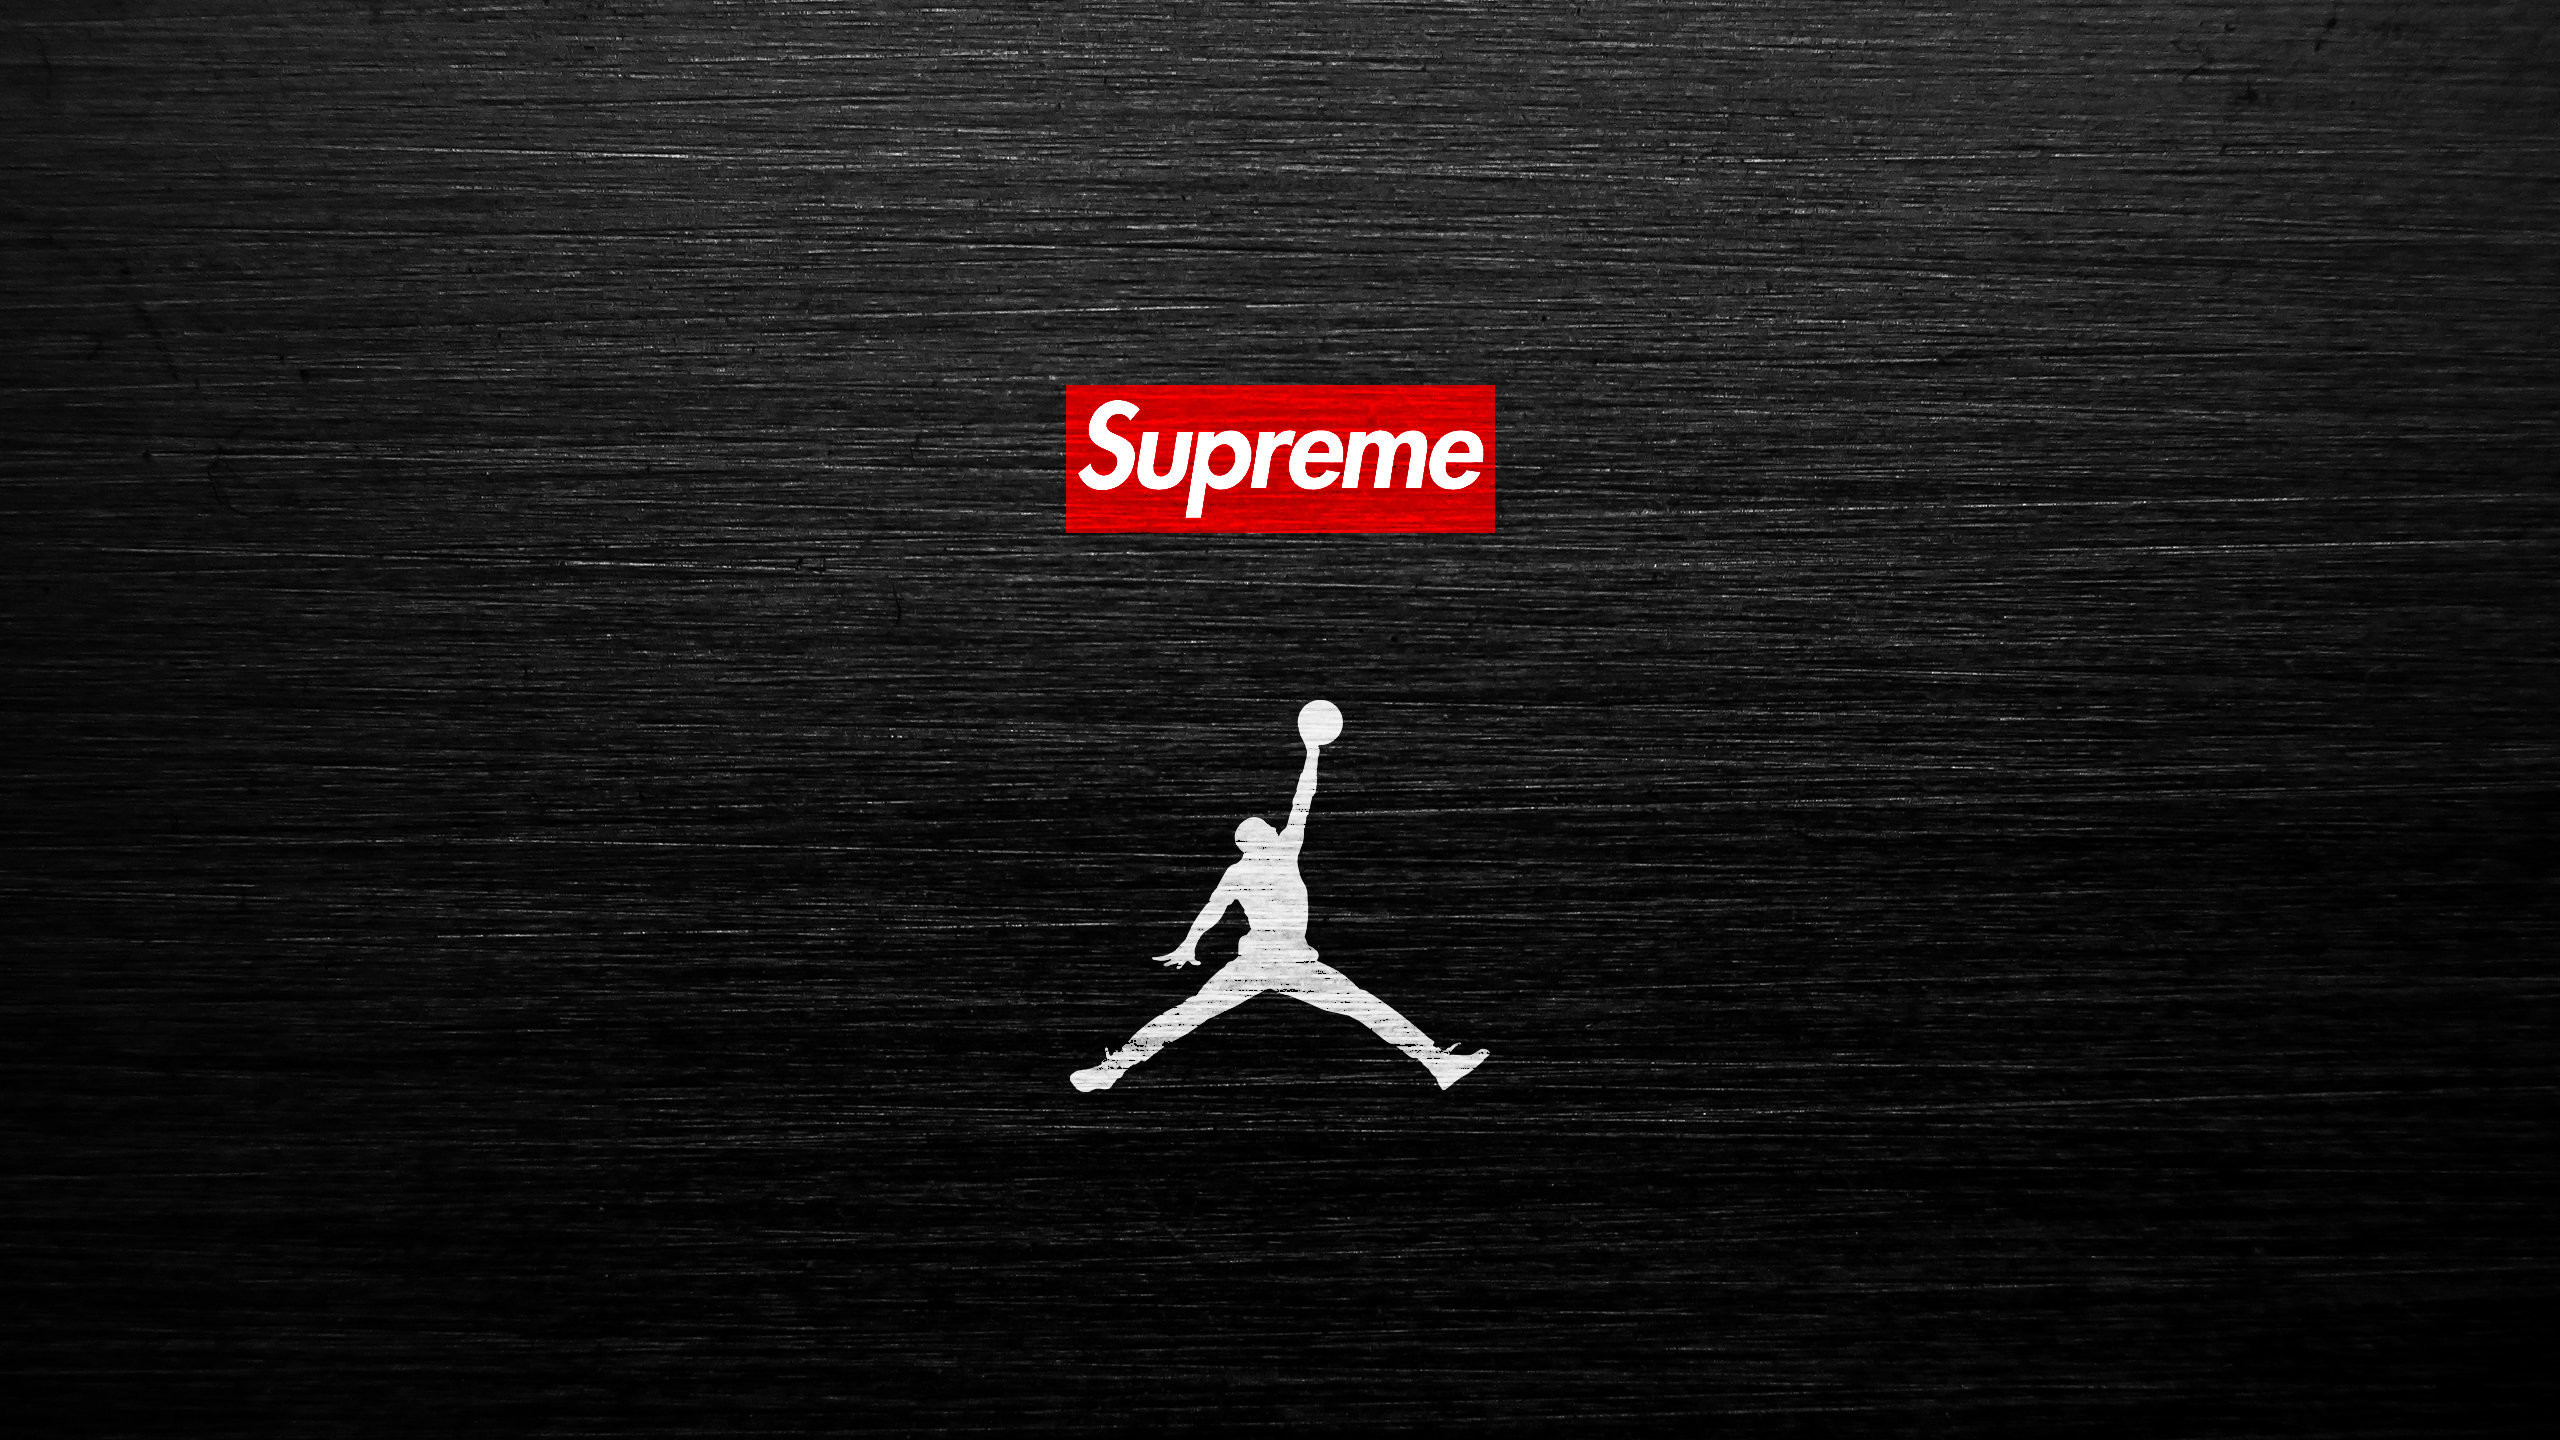 Download the Air Jordan Supreme wallpaper below for your mobile device  (Android phones, iPhone etc.)